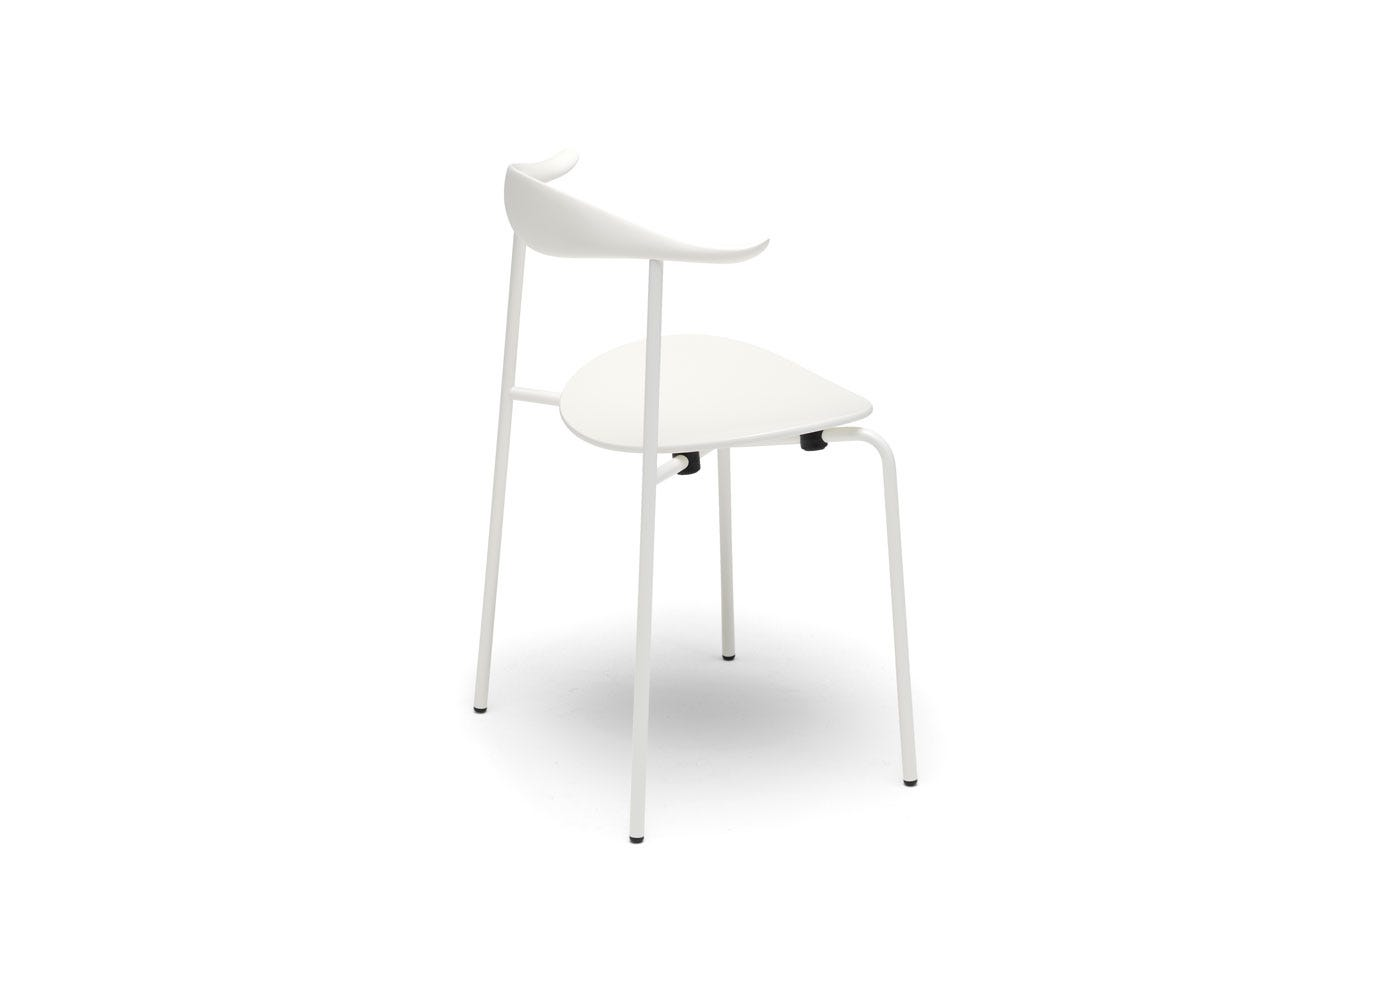 As Shown: CH88T Dining Chair White Beech White Frame